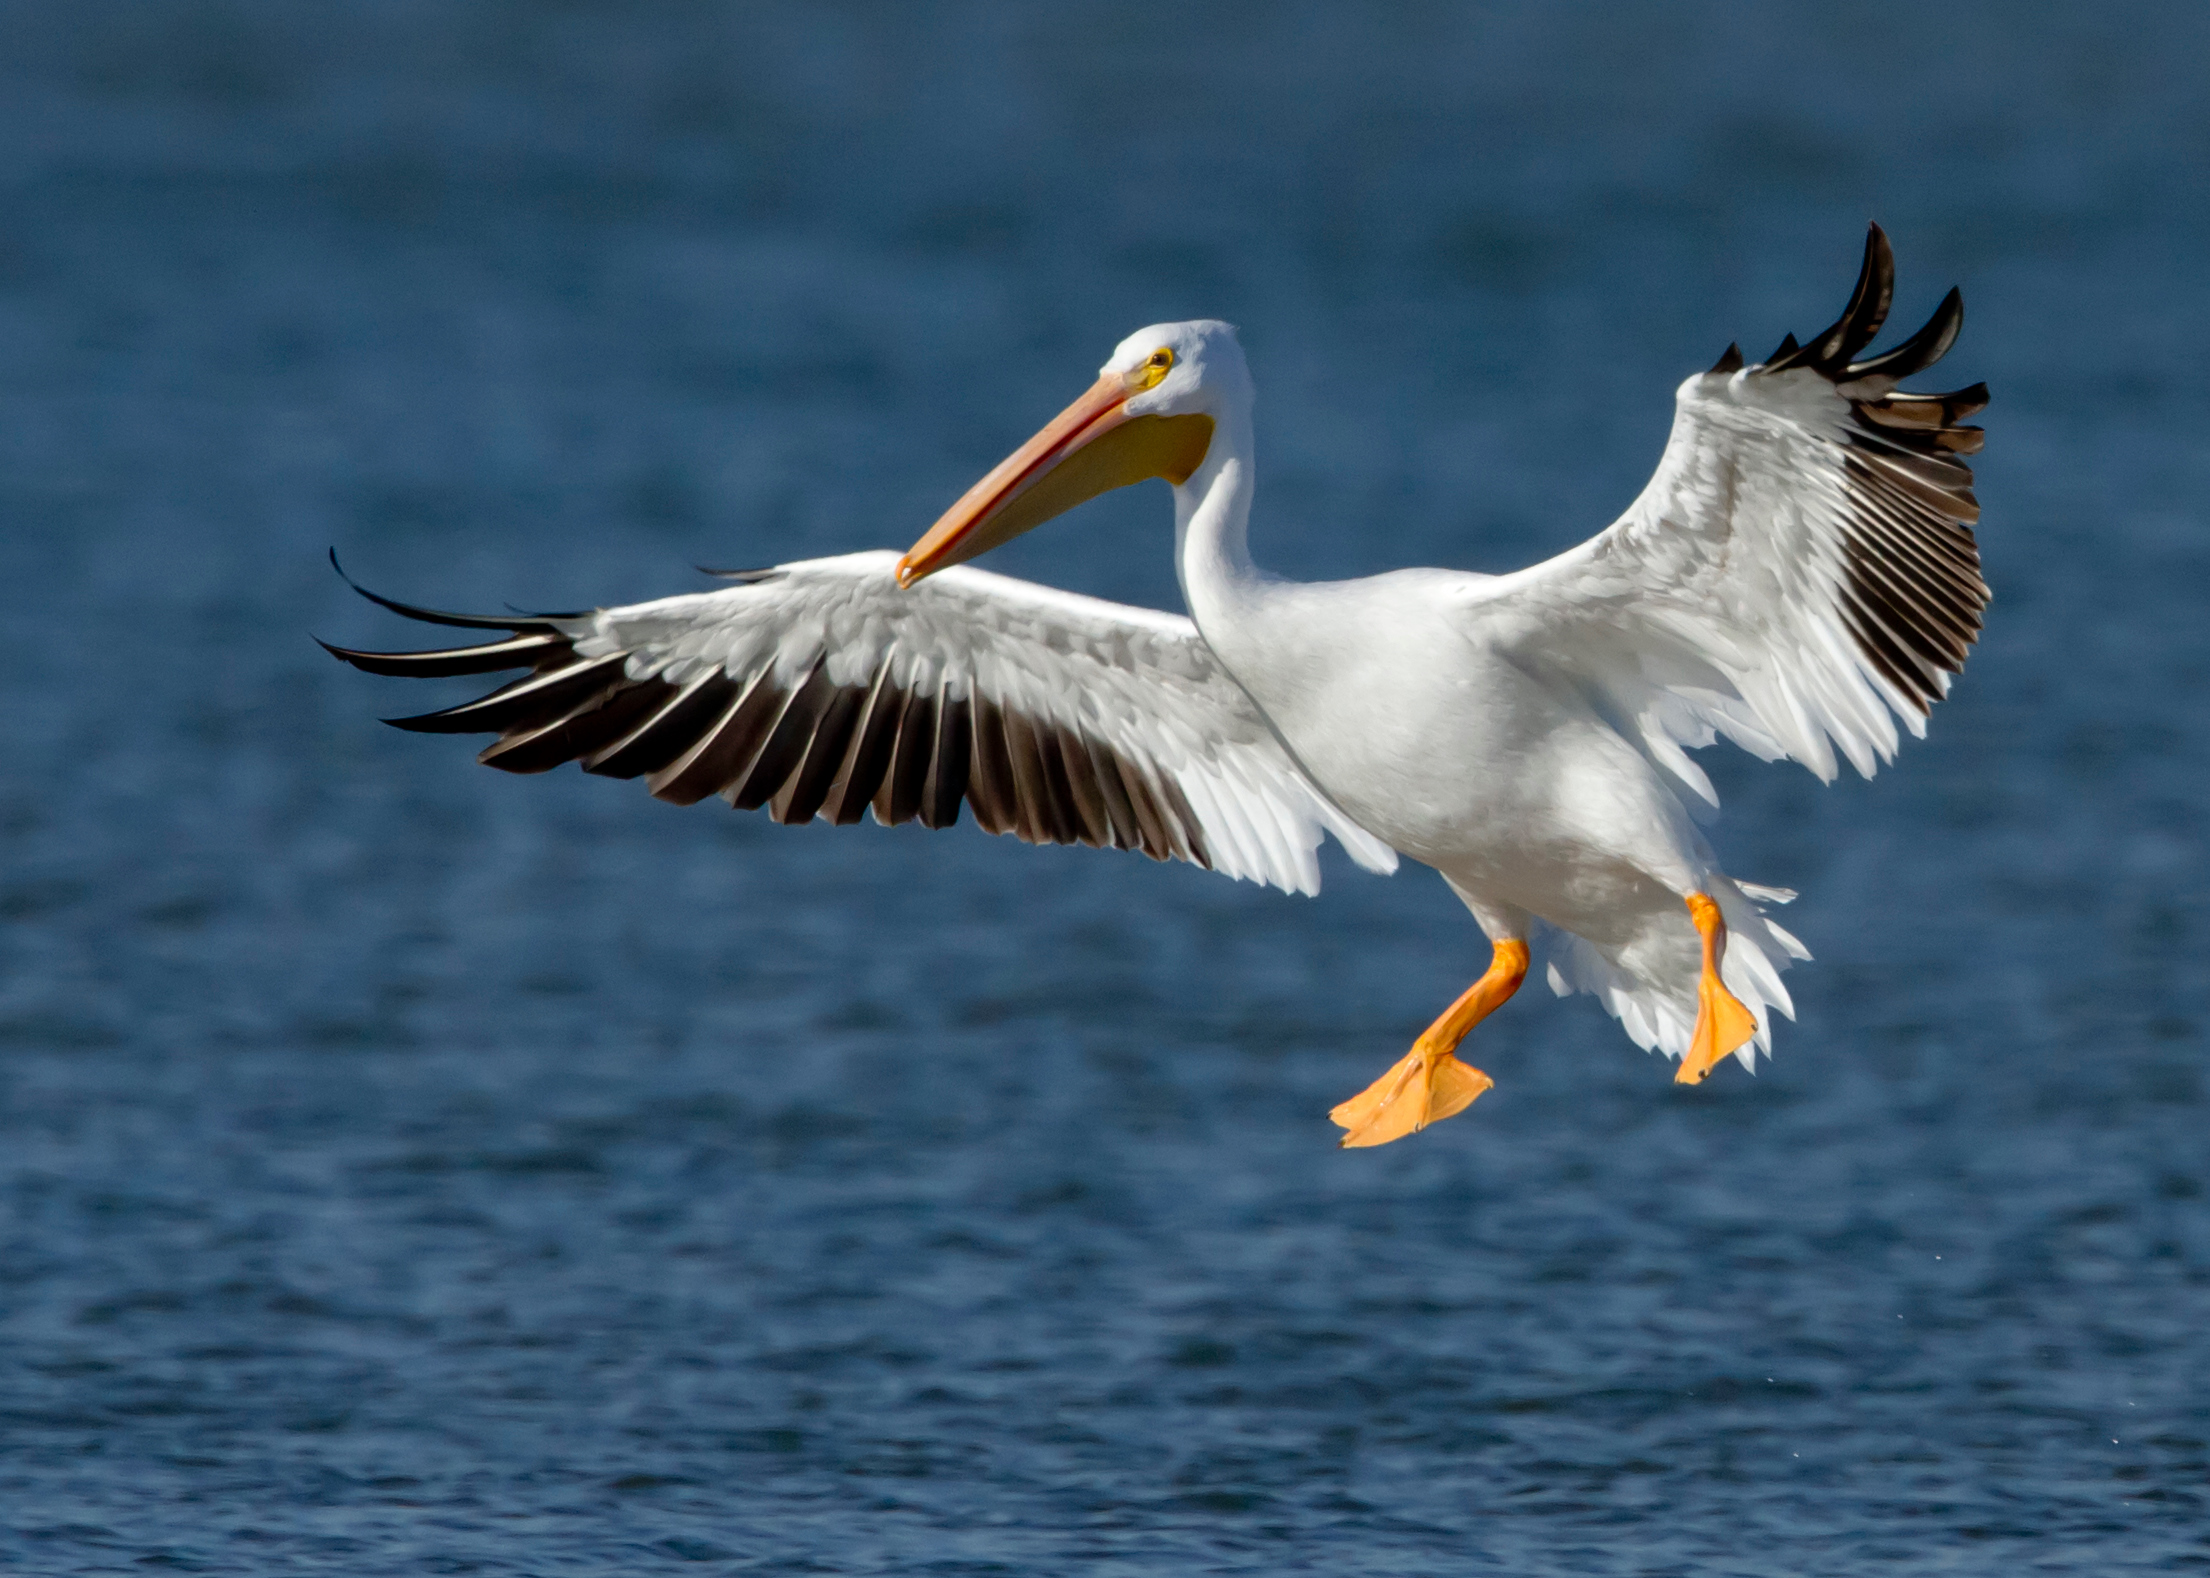 American White Pelican wallpaper